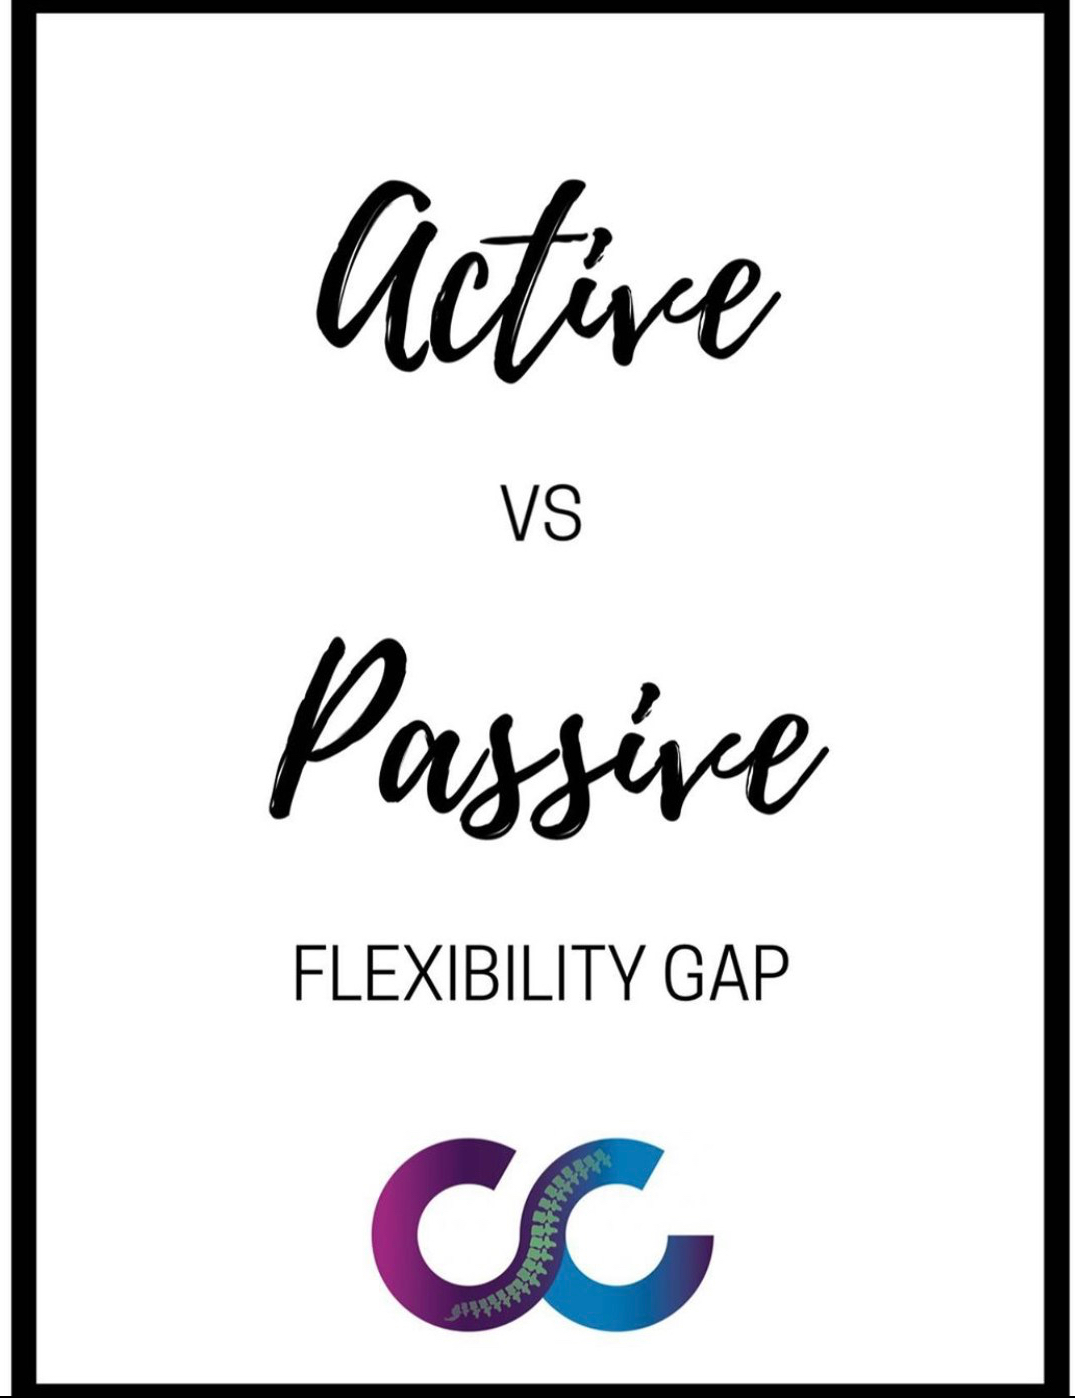 Active vs Passive flexibility gap graphic with The Chiro Co logo at the bottom